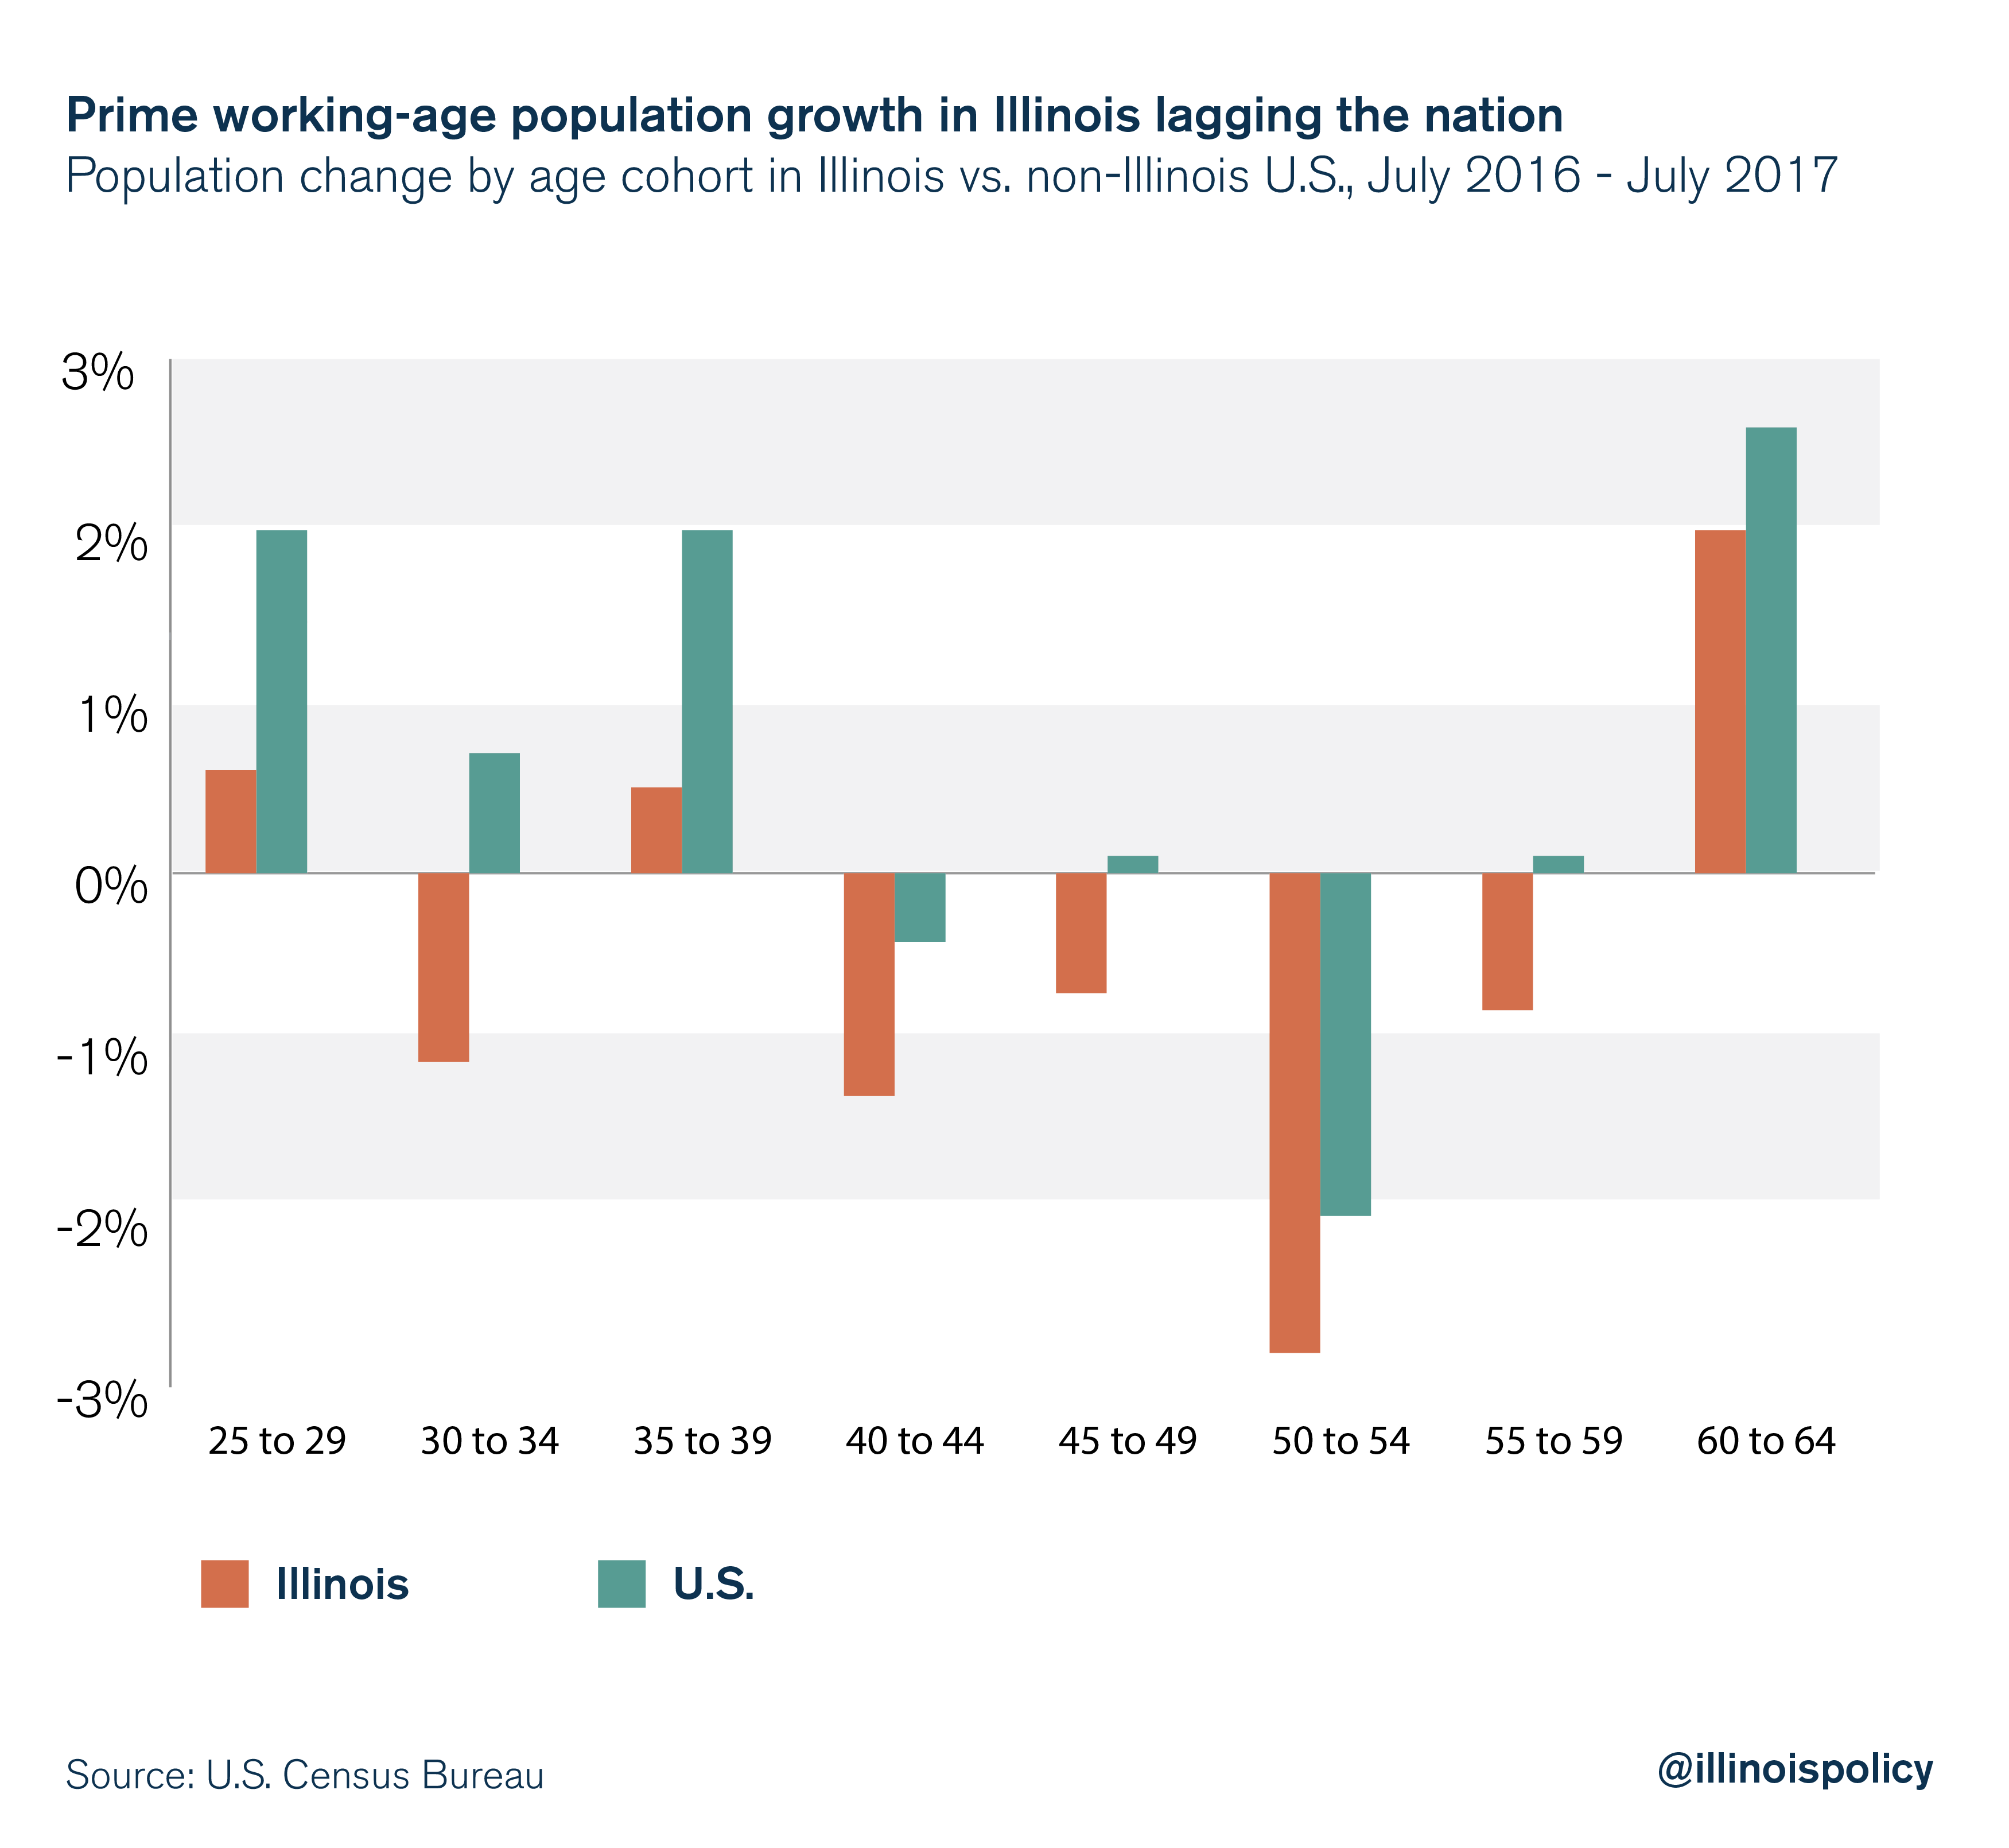 Prime working-age population growth in Illinois lagging the nation